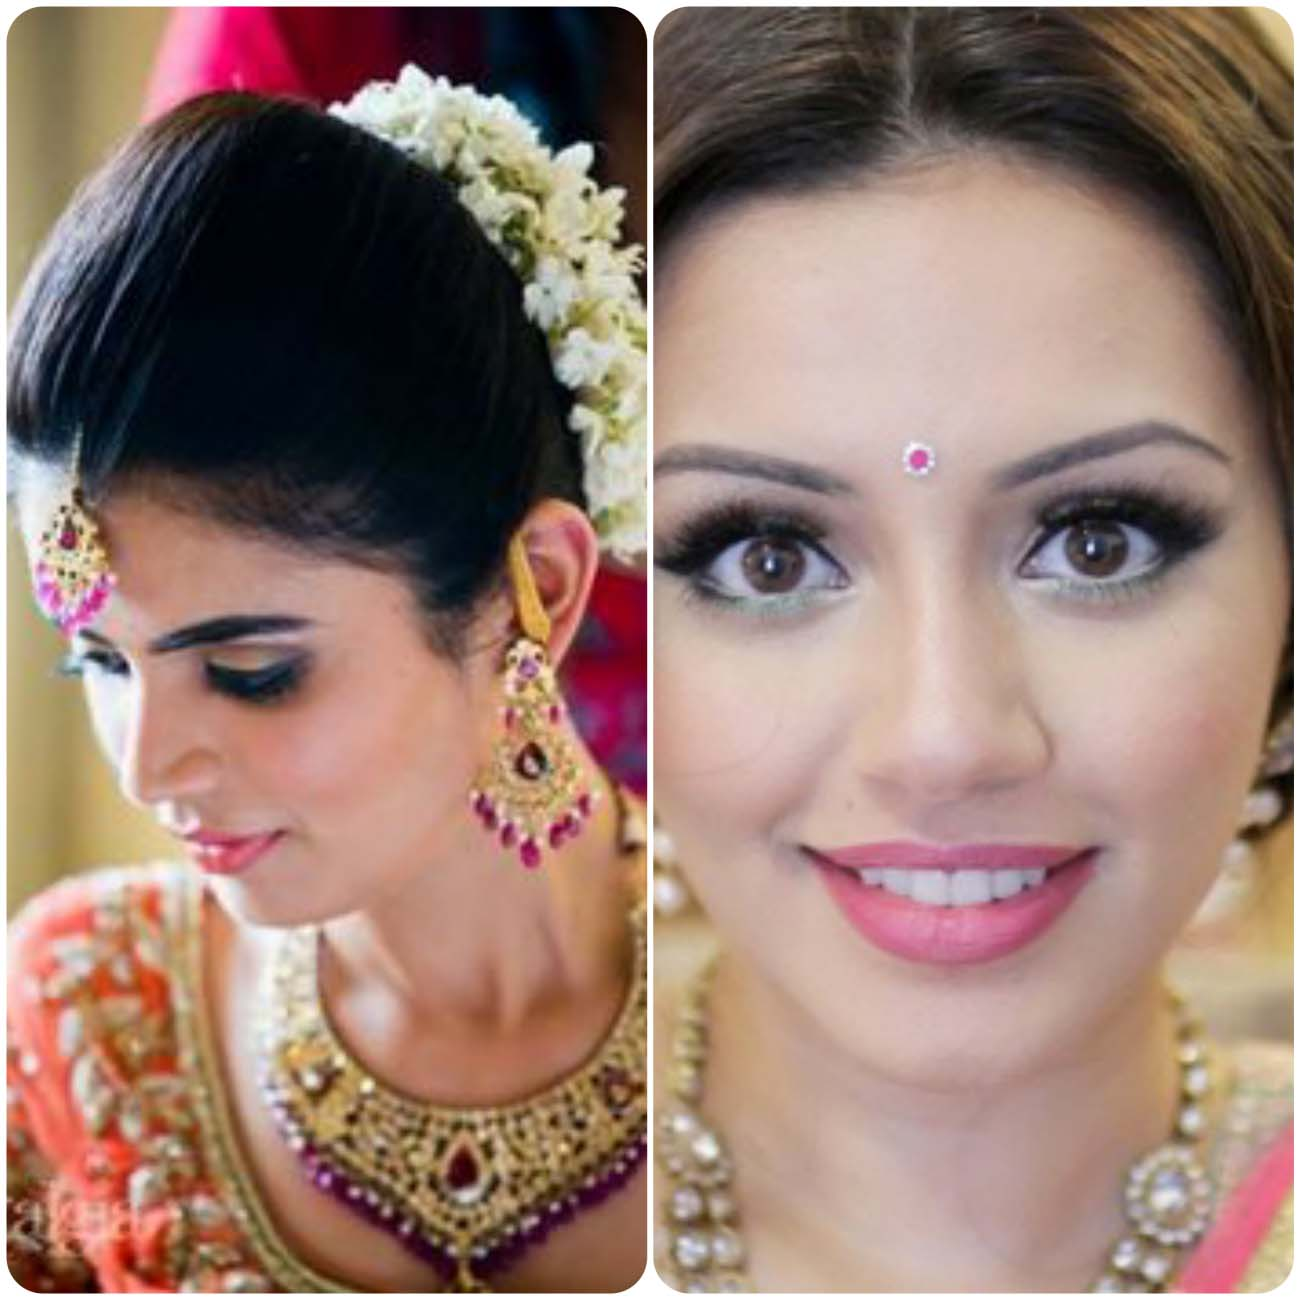 Wedding Hairstyles Indian: Indian Wedding Hairstyles For Brides 2017-2018